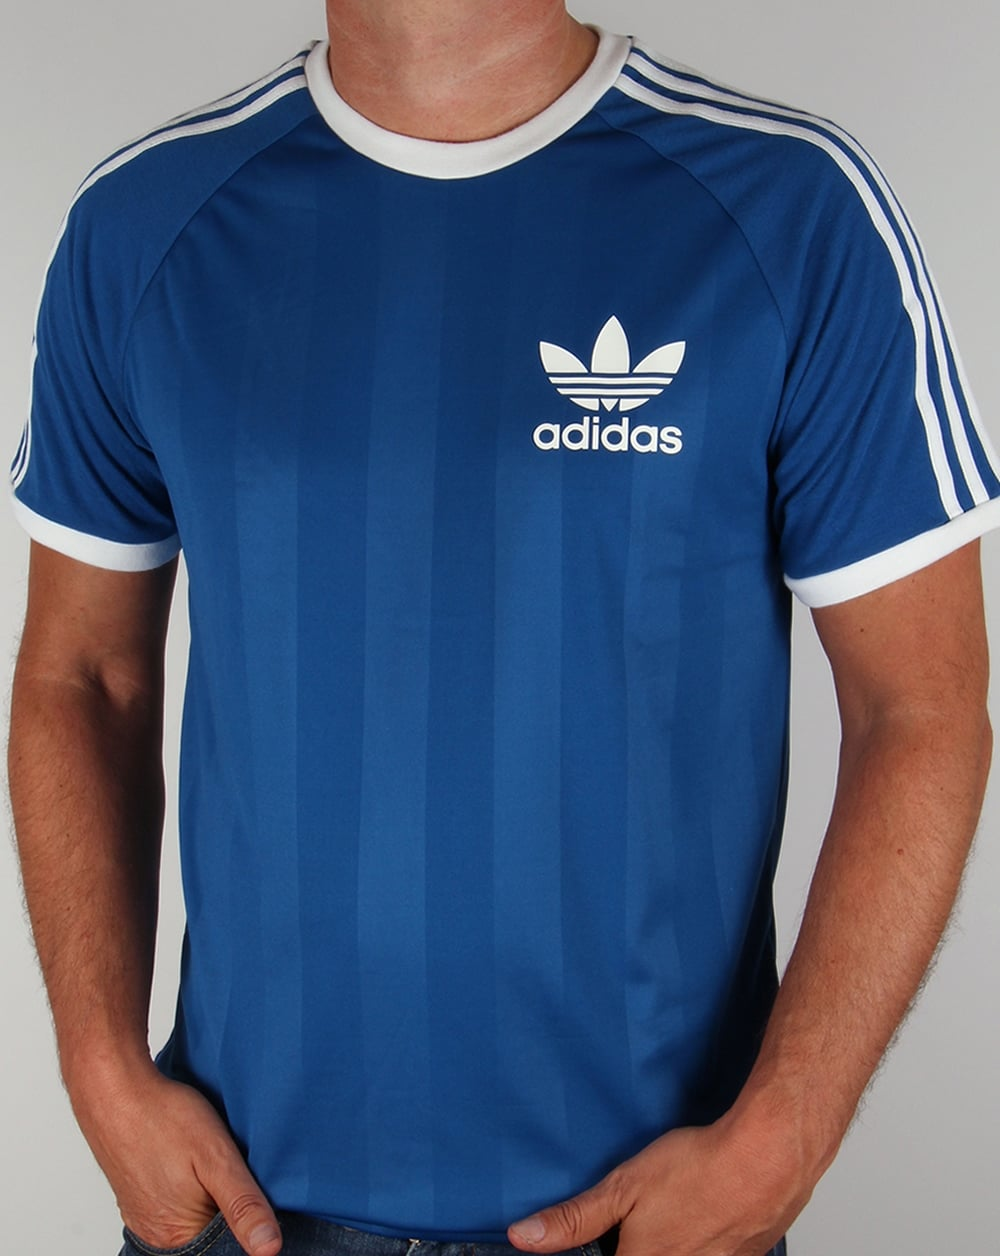 Adida old skool t shirt royal blue 3 stripe football for Adidas ringer t shirt